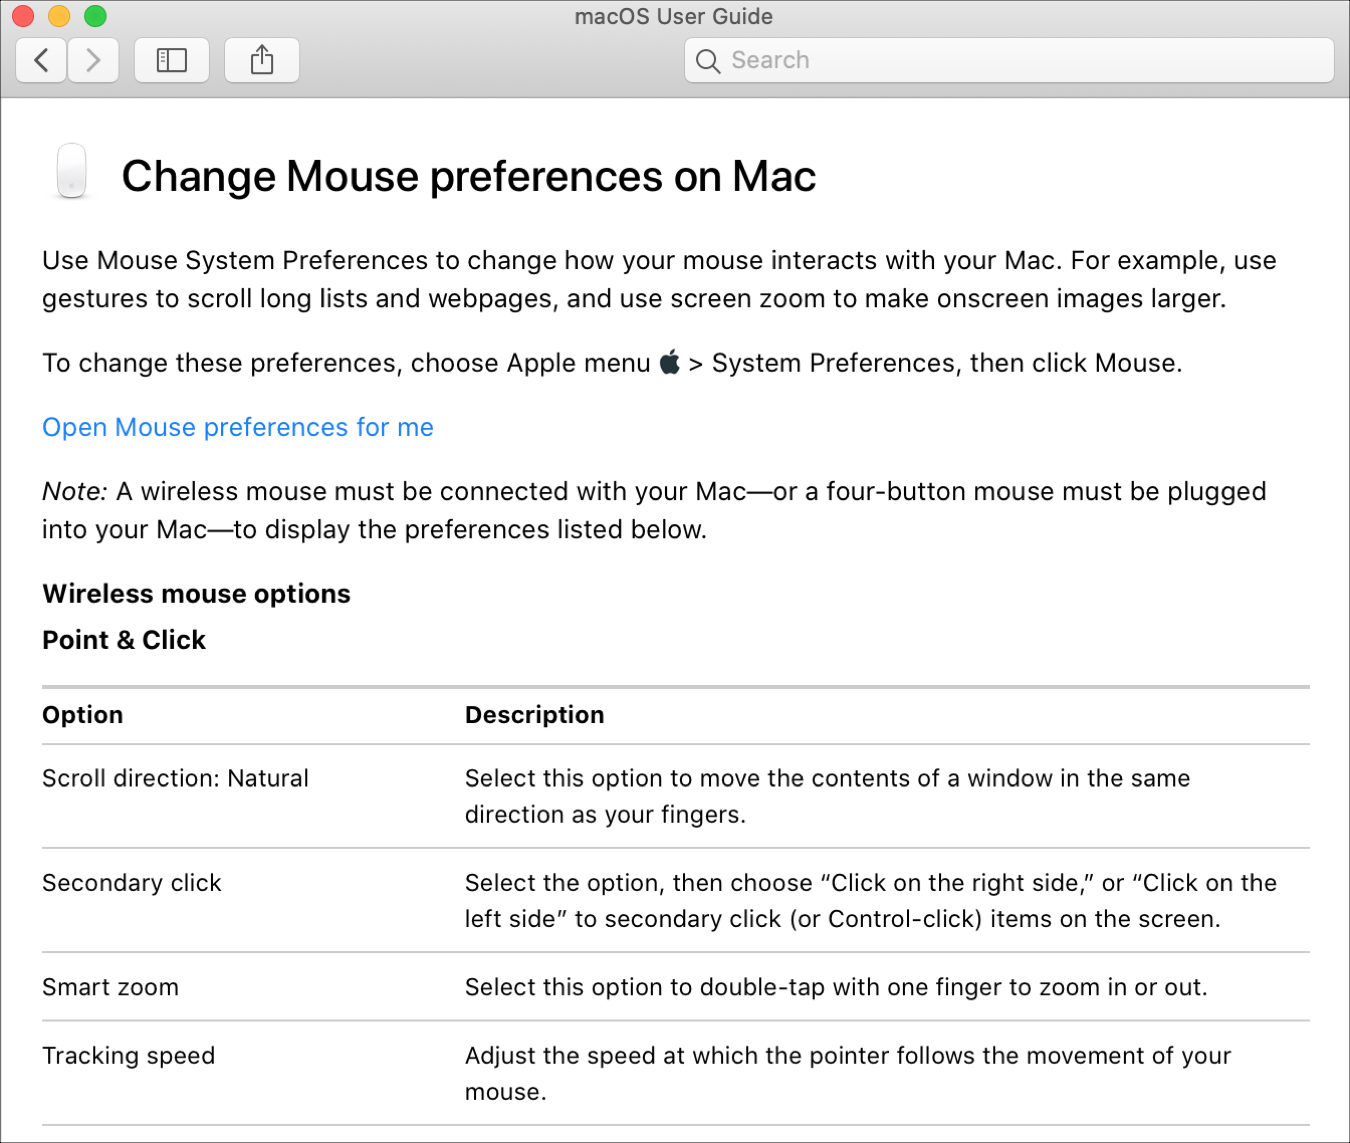 Change Mouse Preferences Help